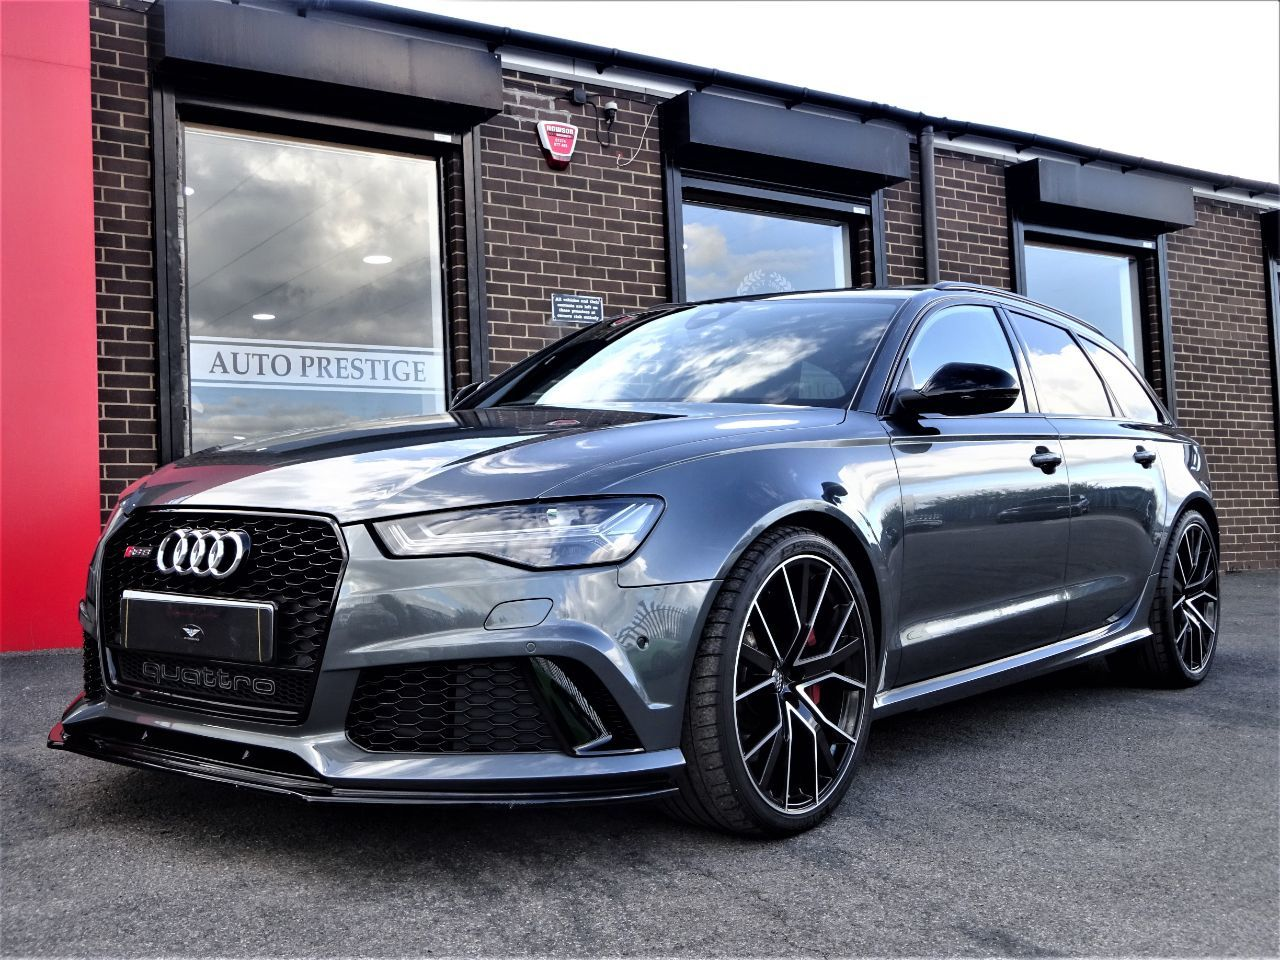 Audi RS6 4.0 RS 6 Performance 5dr Tip Auto 1 OWNER WITH HUGH SPEC DAYTONA GREY DYNAMIC PACK 2 YEAR WARRANTY Estate Petrol Grey at Autoprestige Bradford